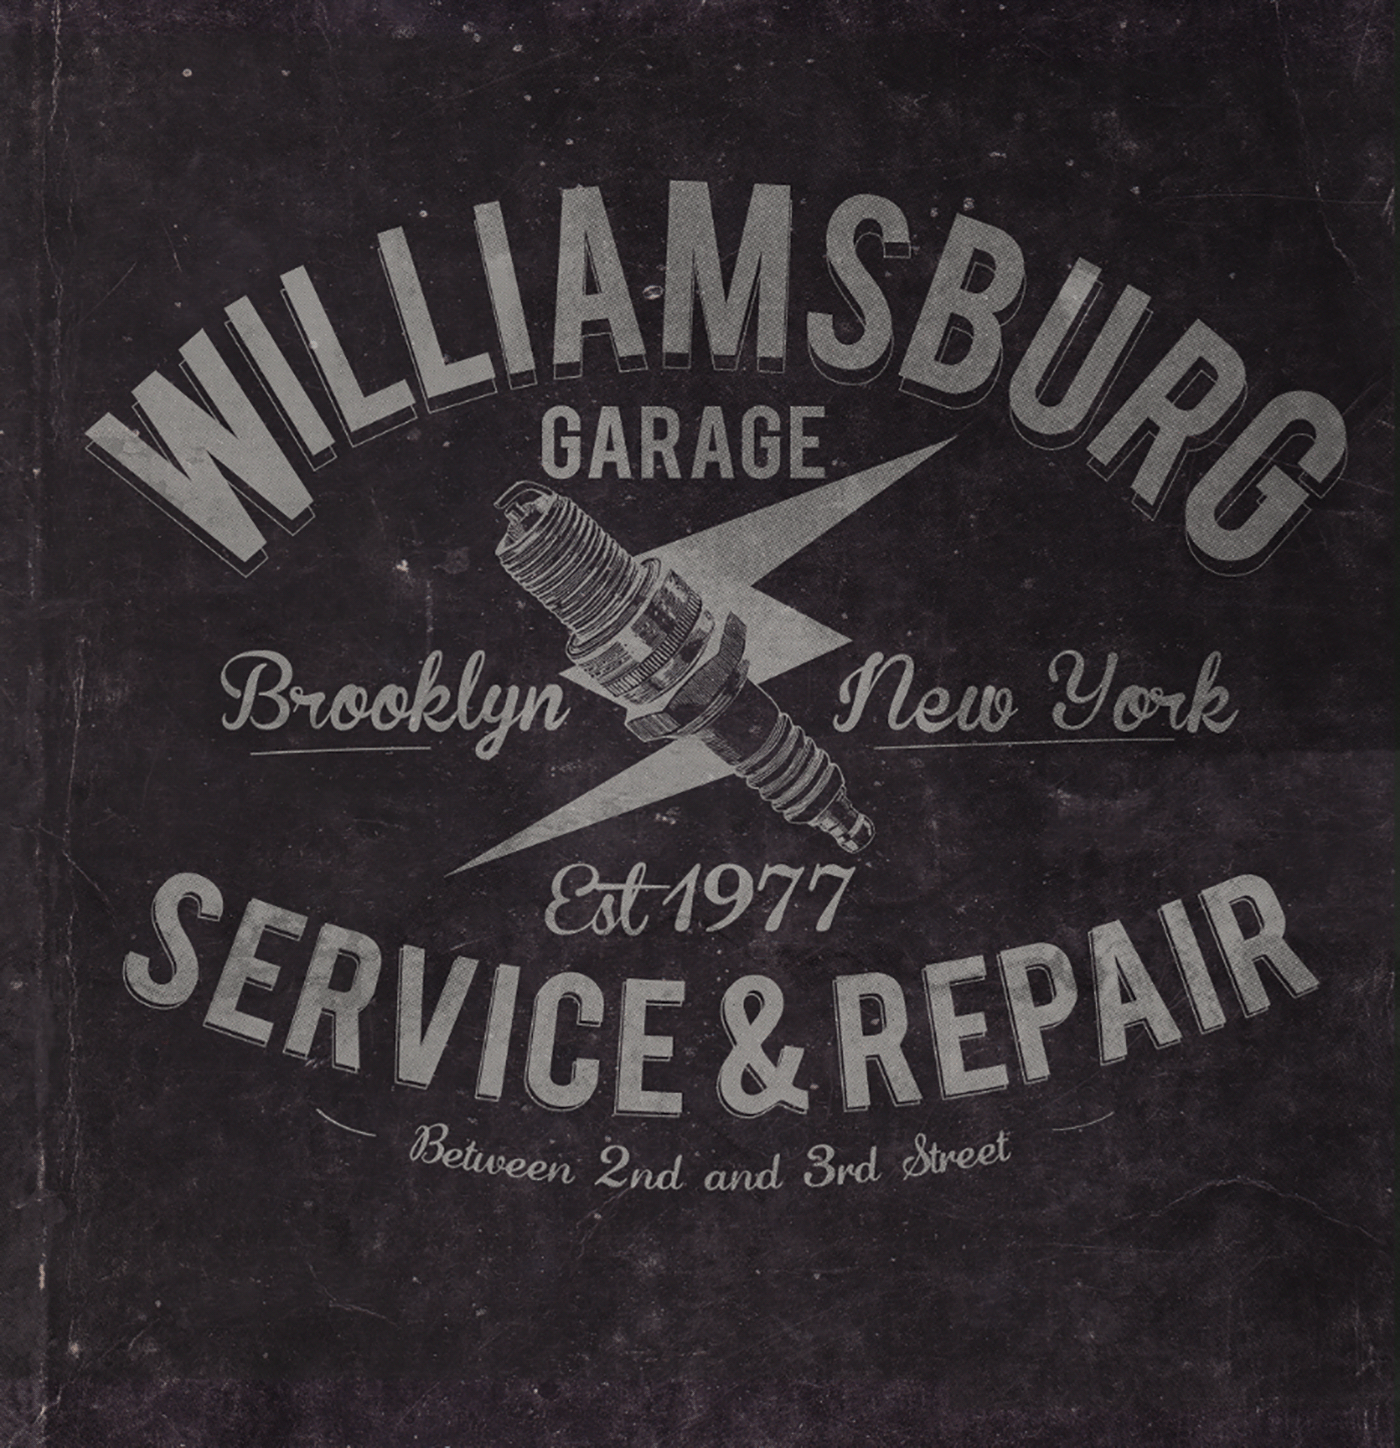 americana handrawn motorcycles old labels old signage Painted sewing machine Typeface vintage williamsburg